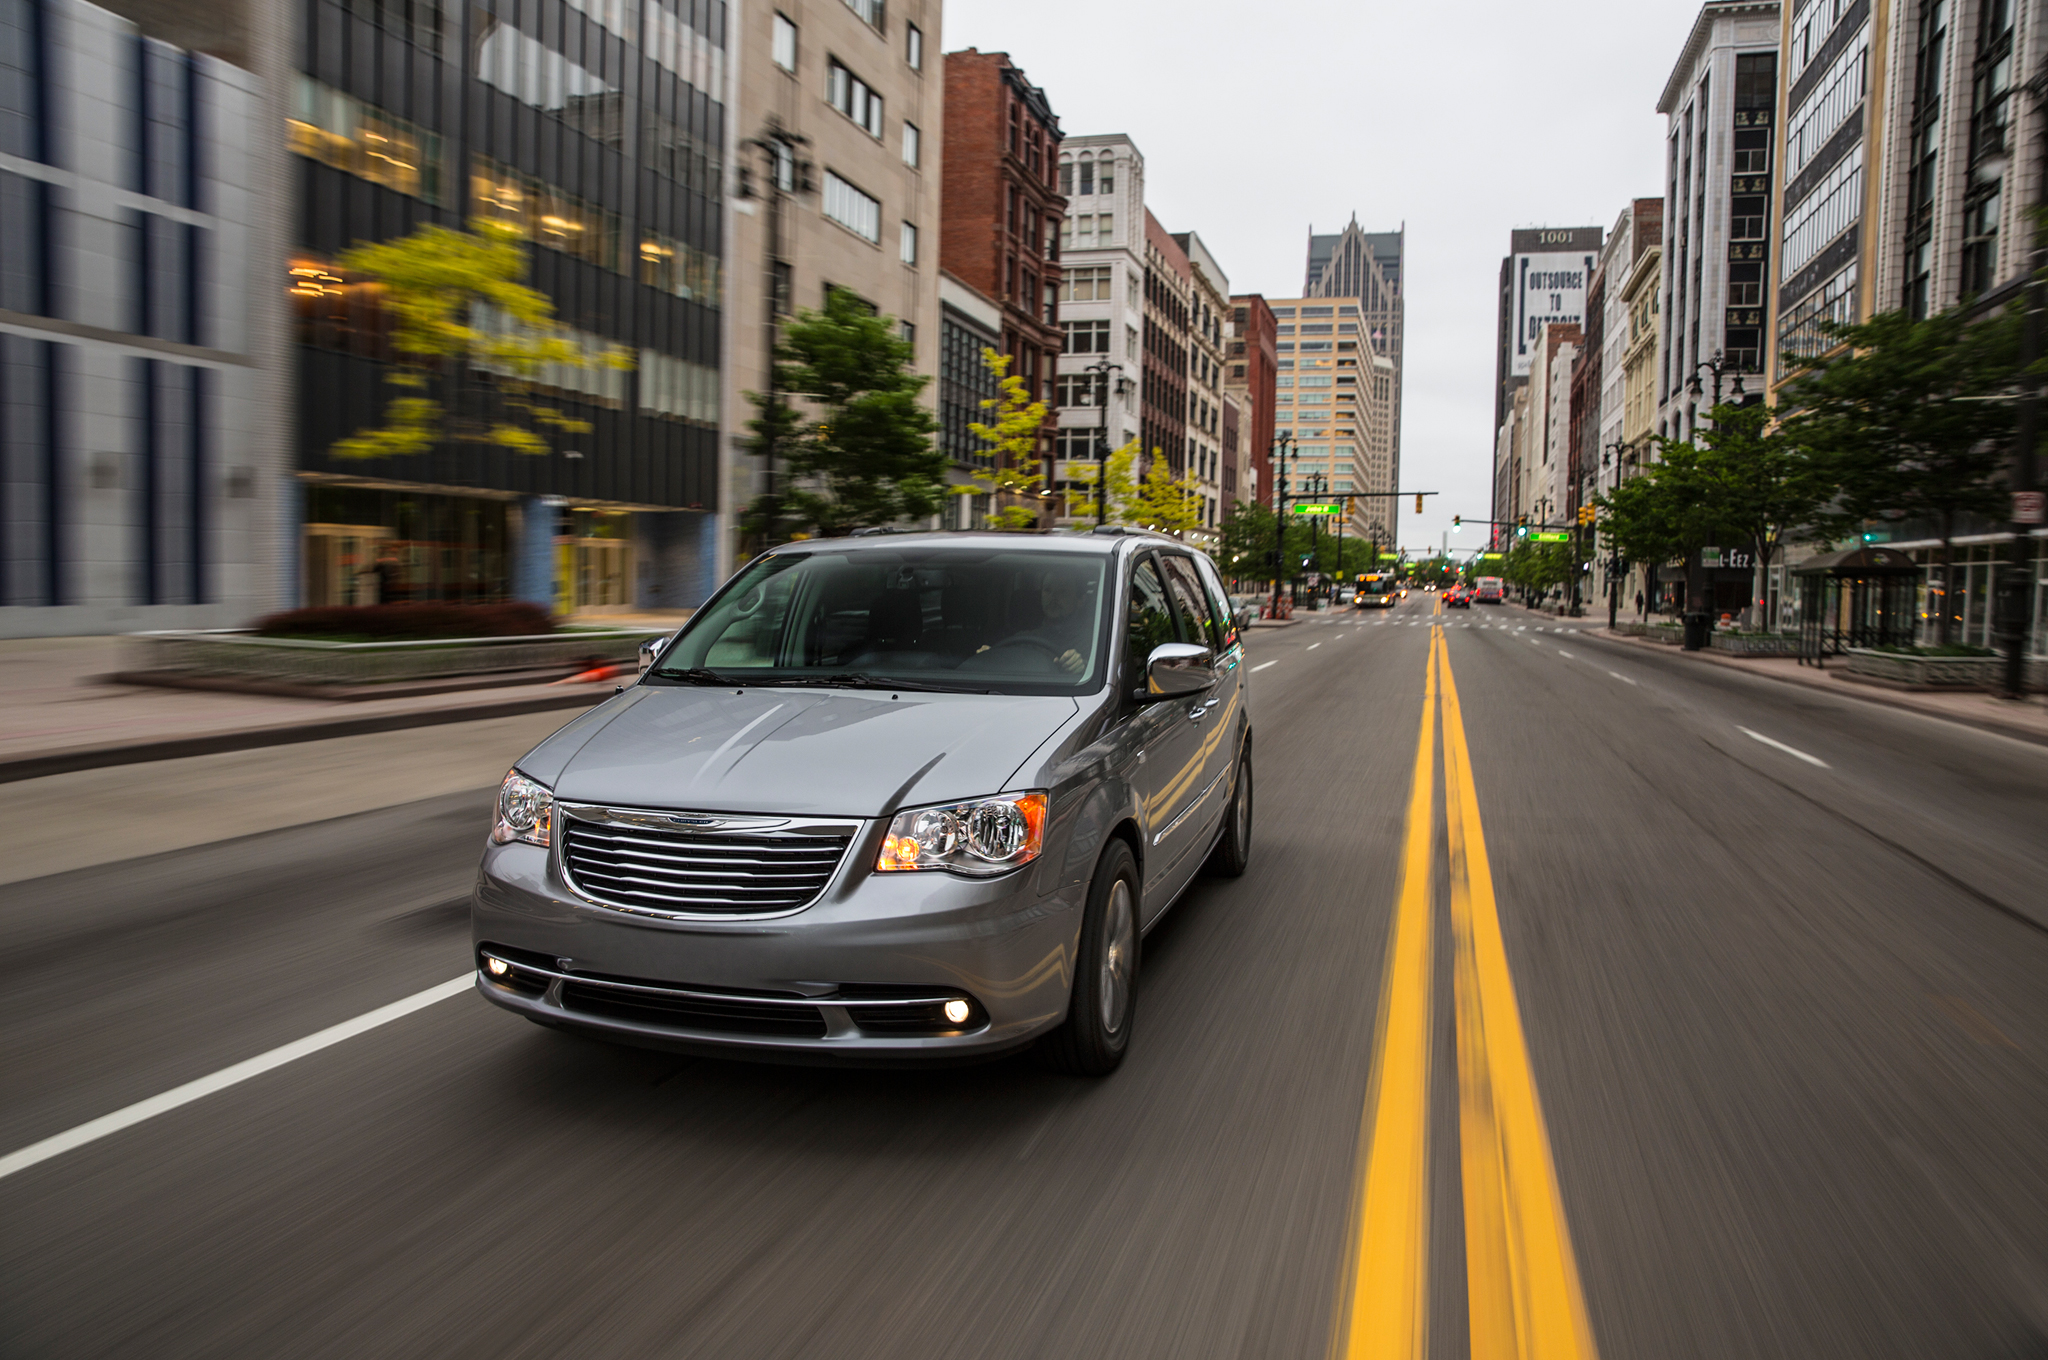 Next-Gen Chrysler Town & Country PHEV to Arrive Ahead of Schedule